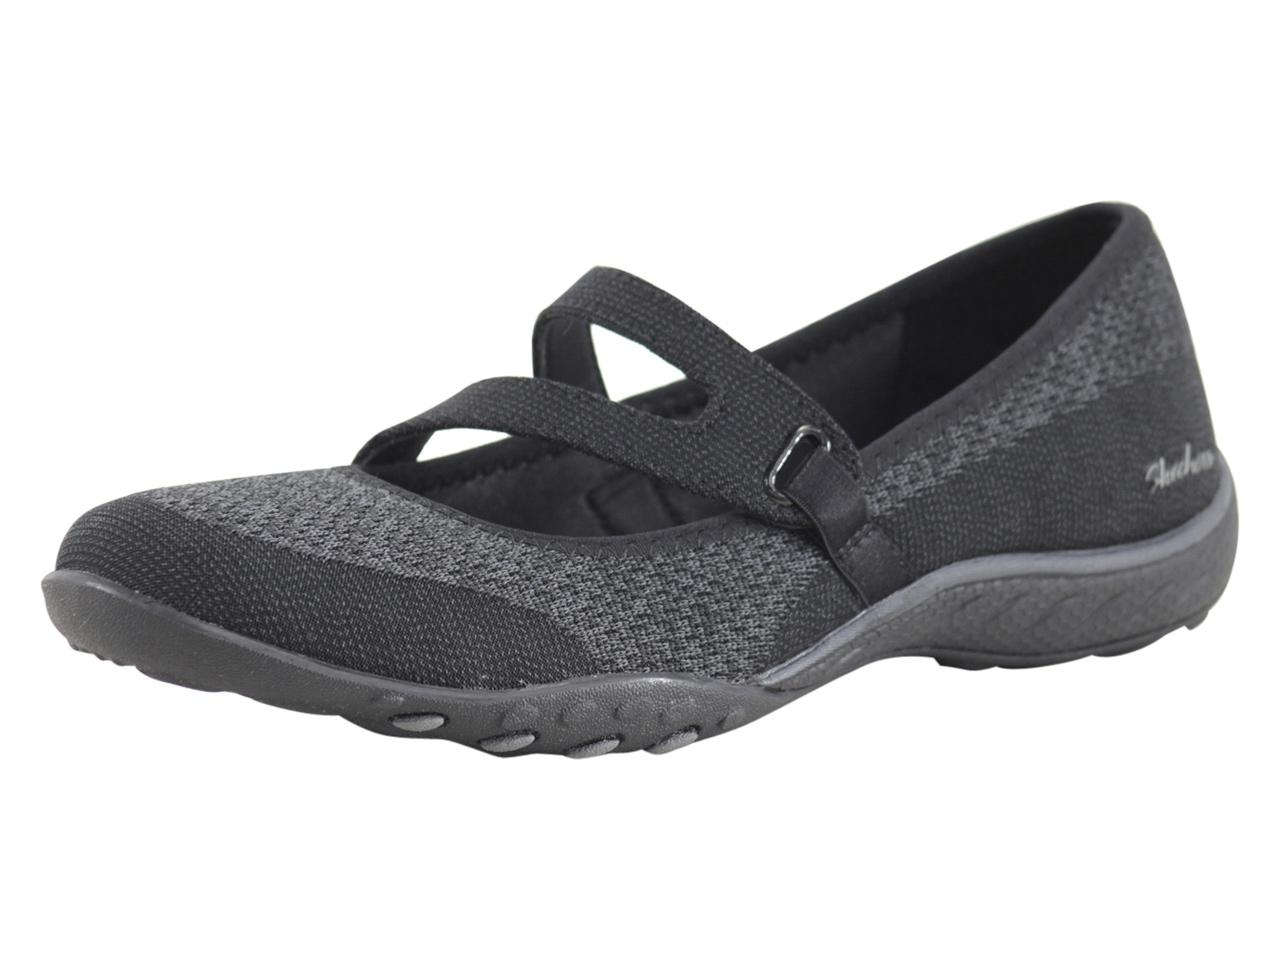 Skechers Women s Breathe Easy Lucky Lady Memory Foam Mary Janes Sneakers  Shoes ab3e62ca8de6